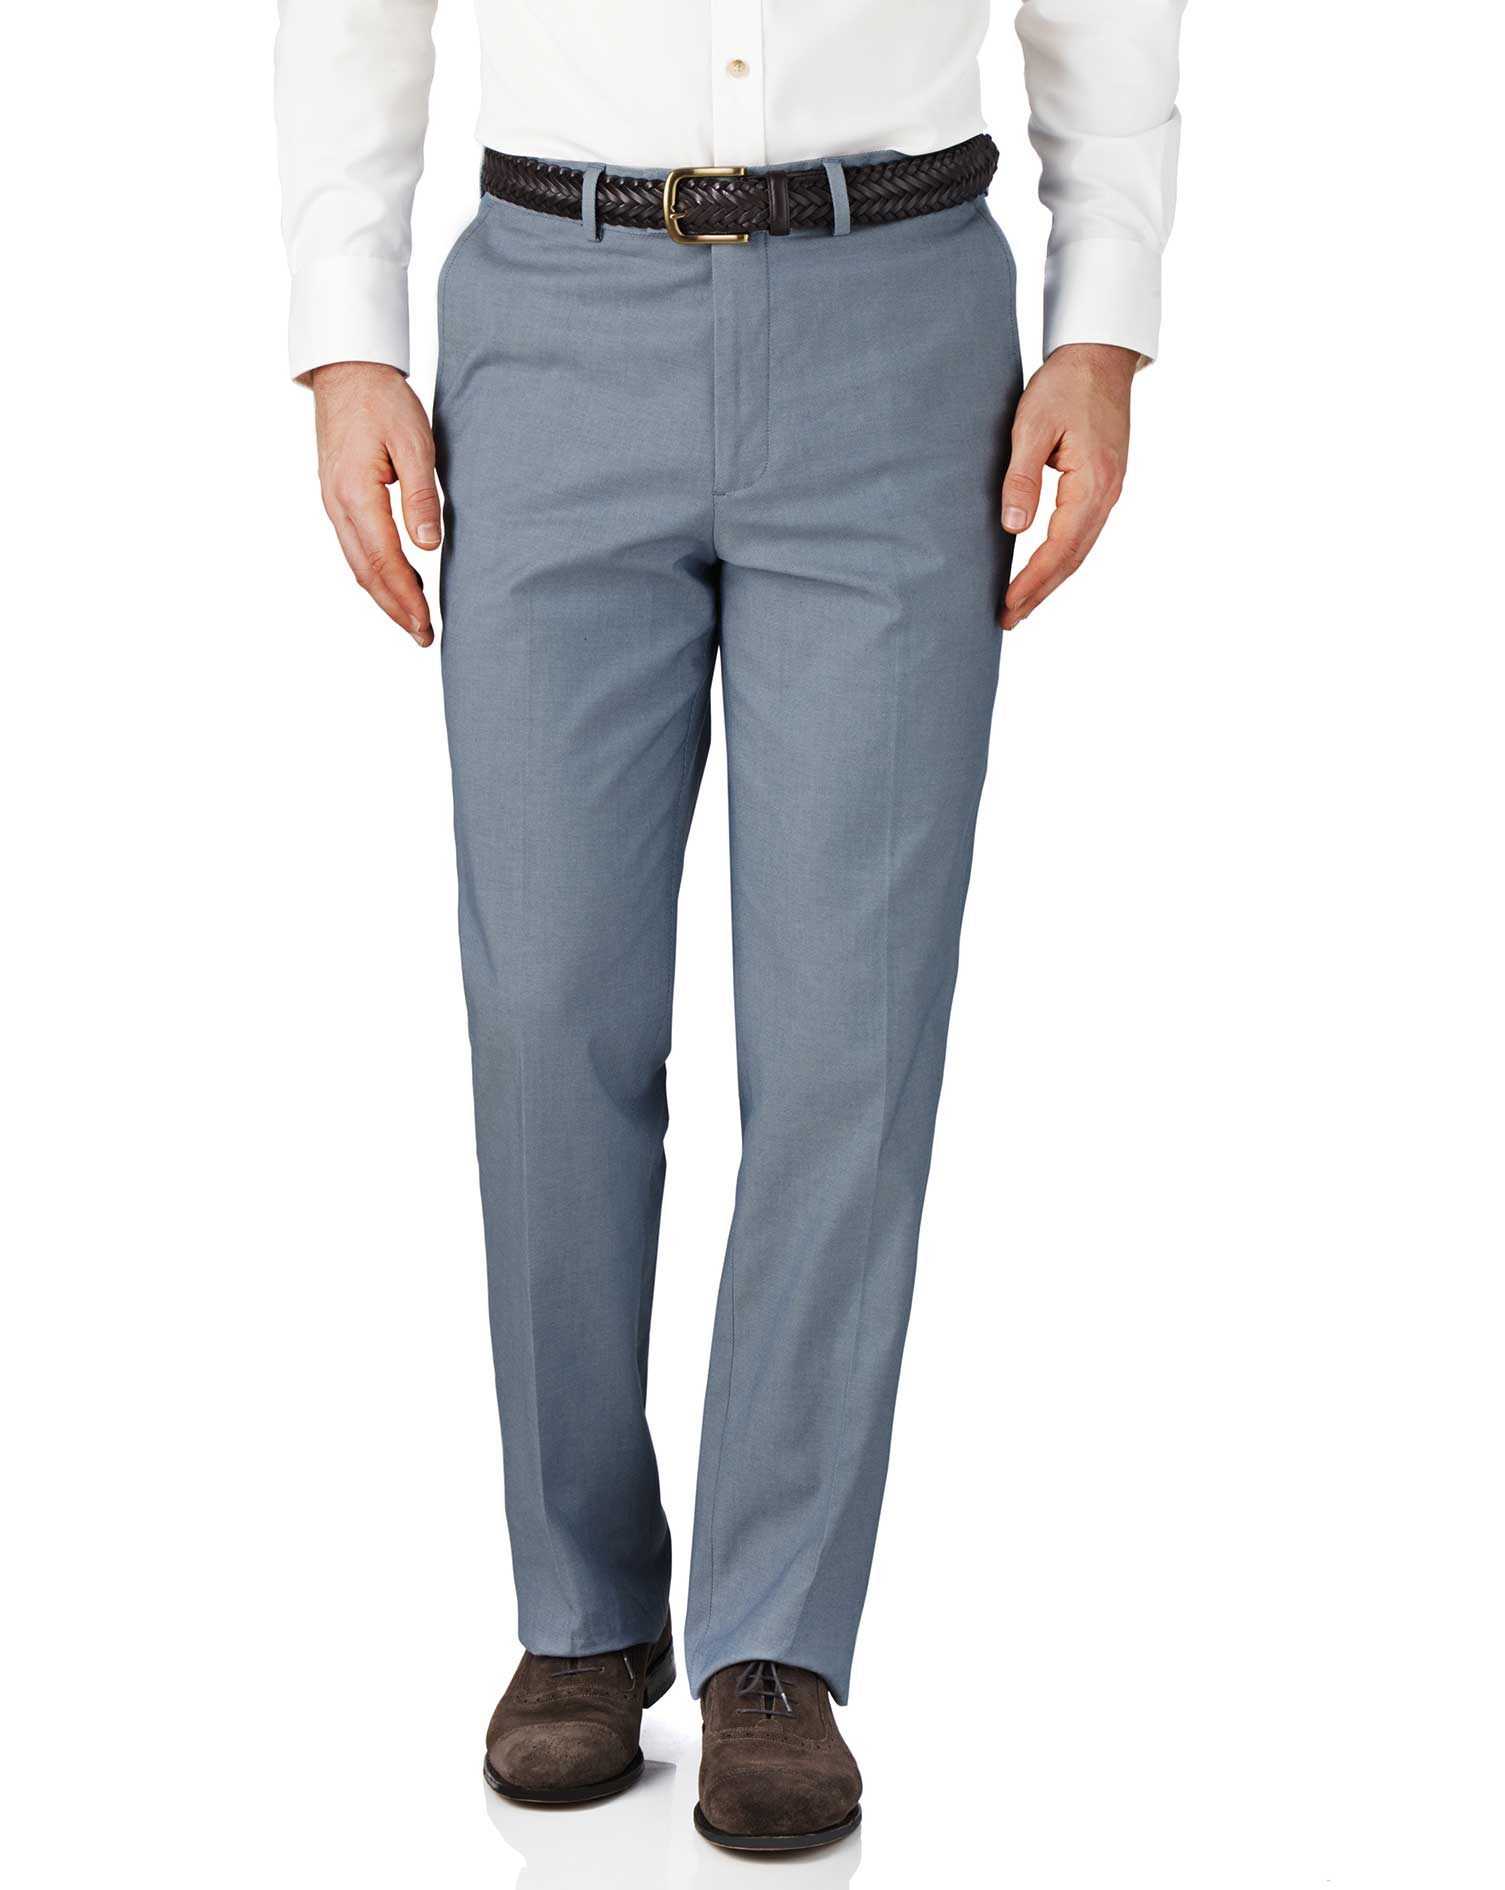 Blue Chambray Classic Fit Stretch Cavalry Twill Trousers Size W38 L30 by Charles Tyrwhitt